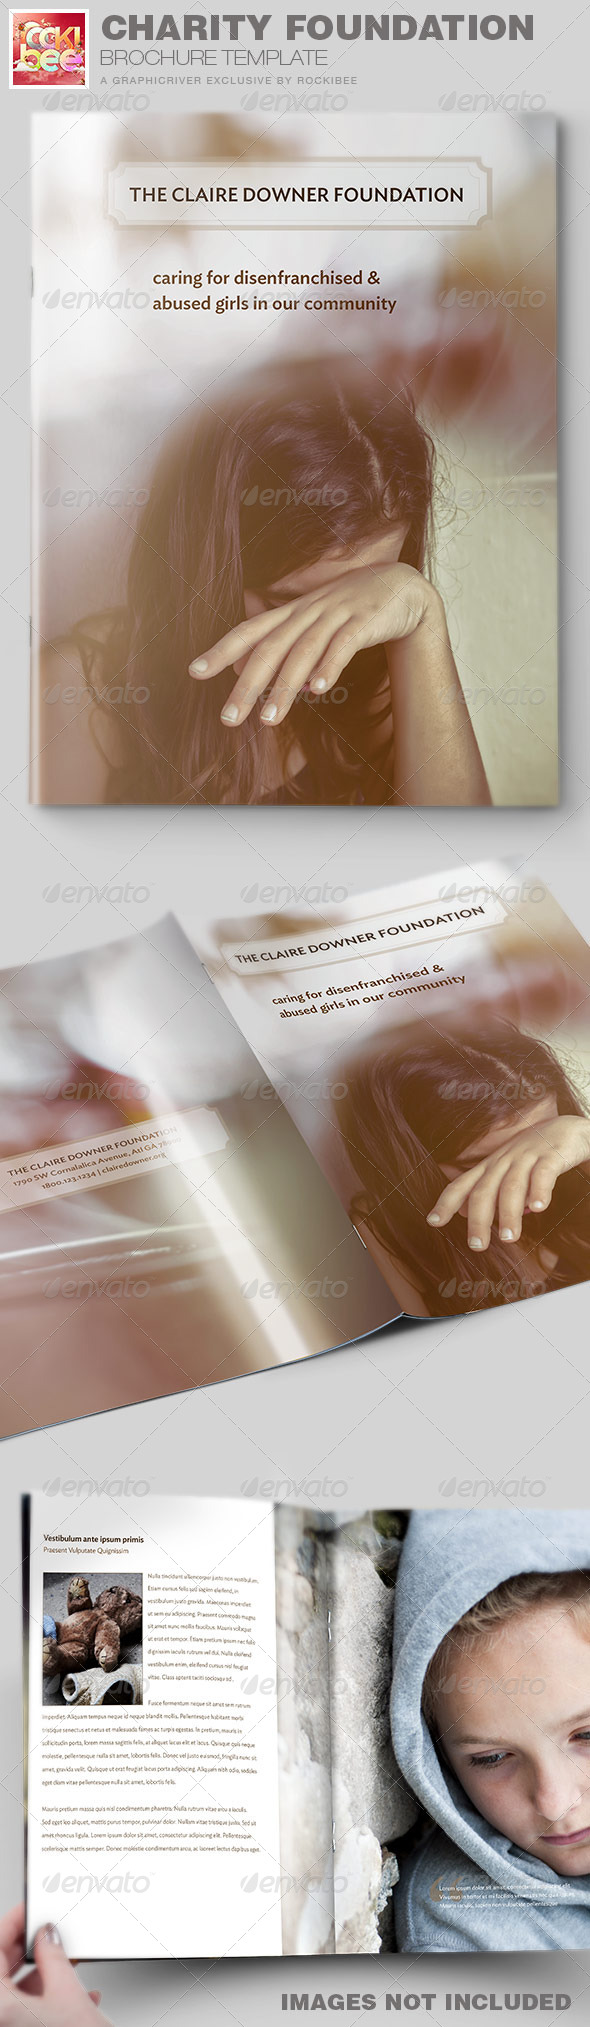 Charity Foundation Brochure Template - Informational Brochures